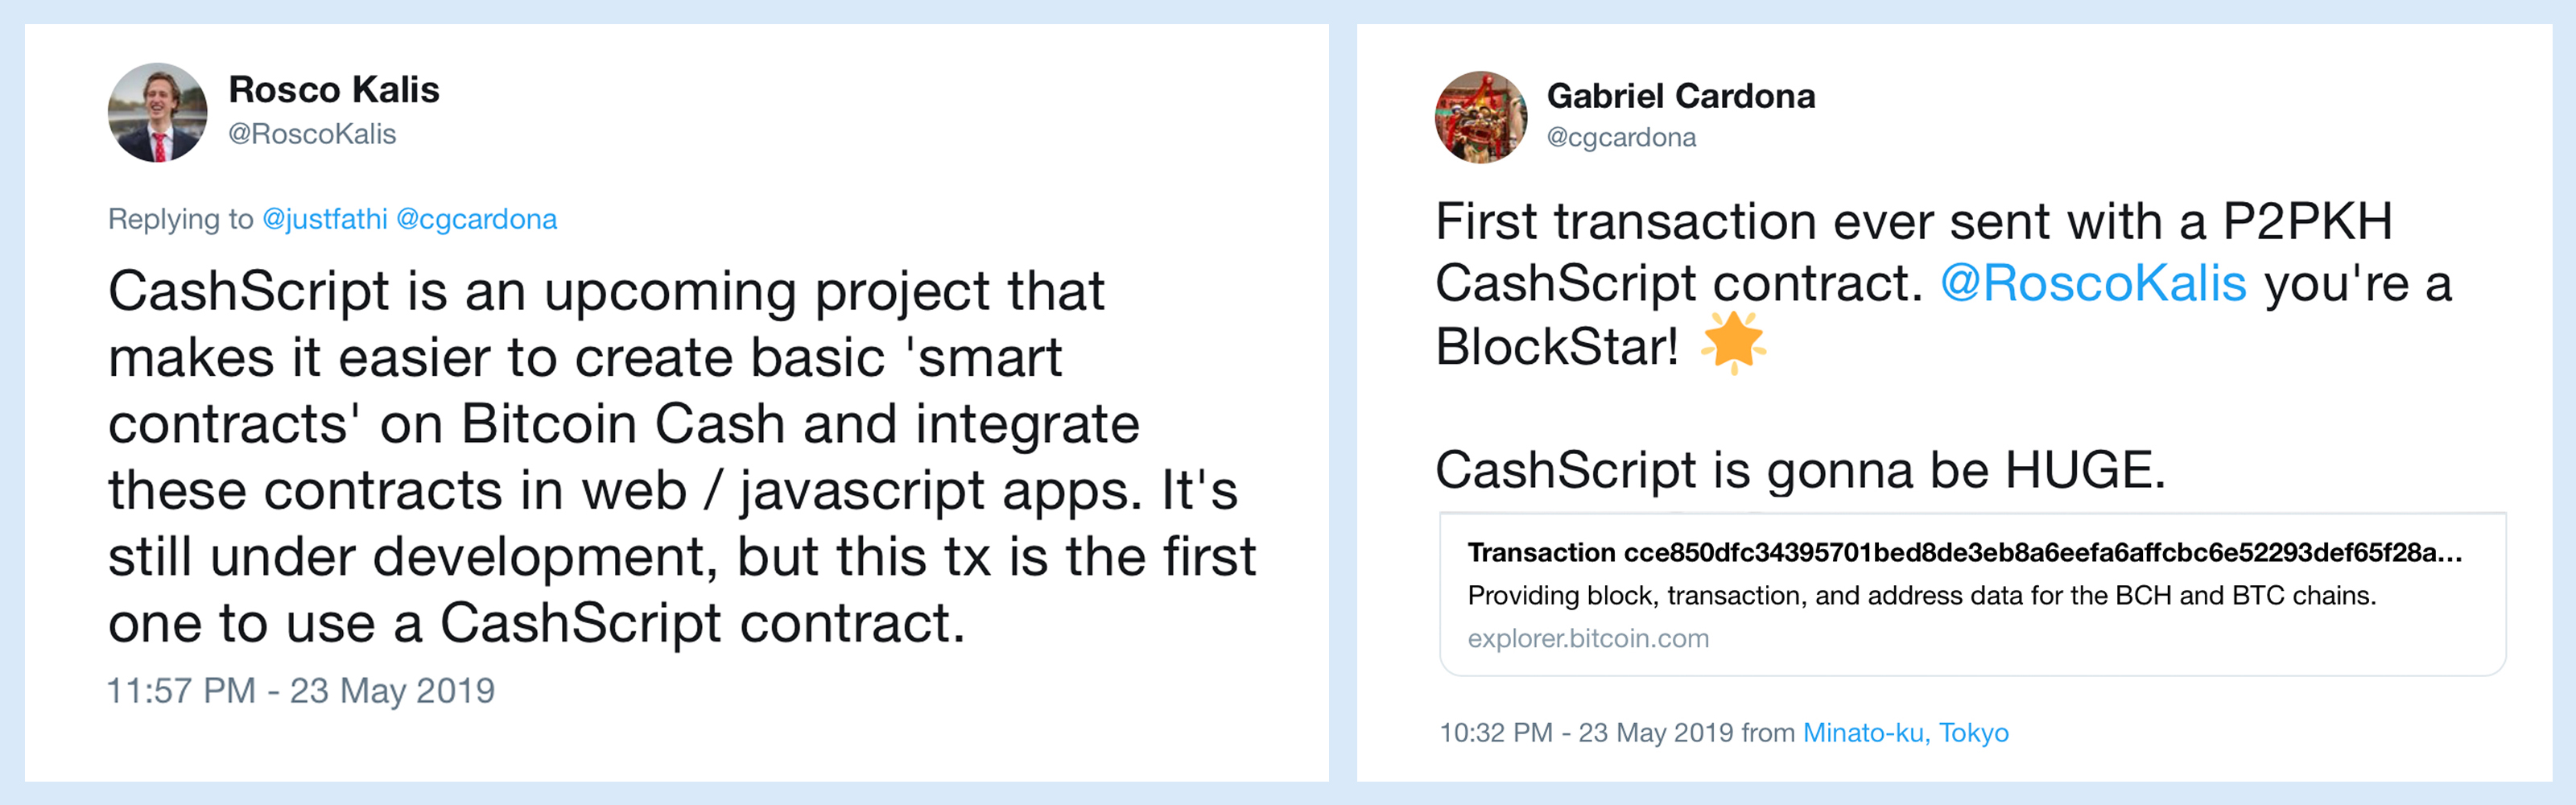 Cashscript Is Coming, Bringing Ethereum-Like Smart Contracts to Bitcoin Cash